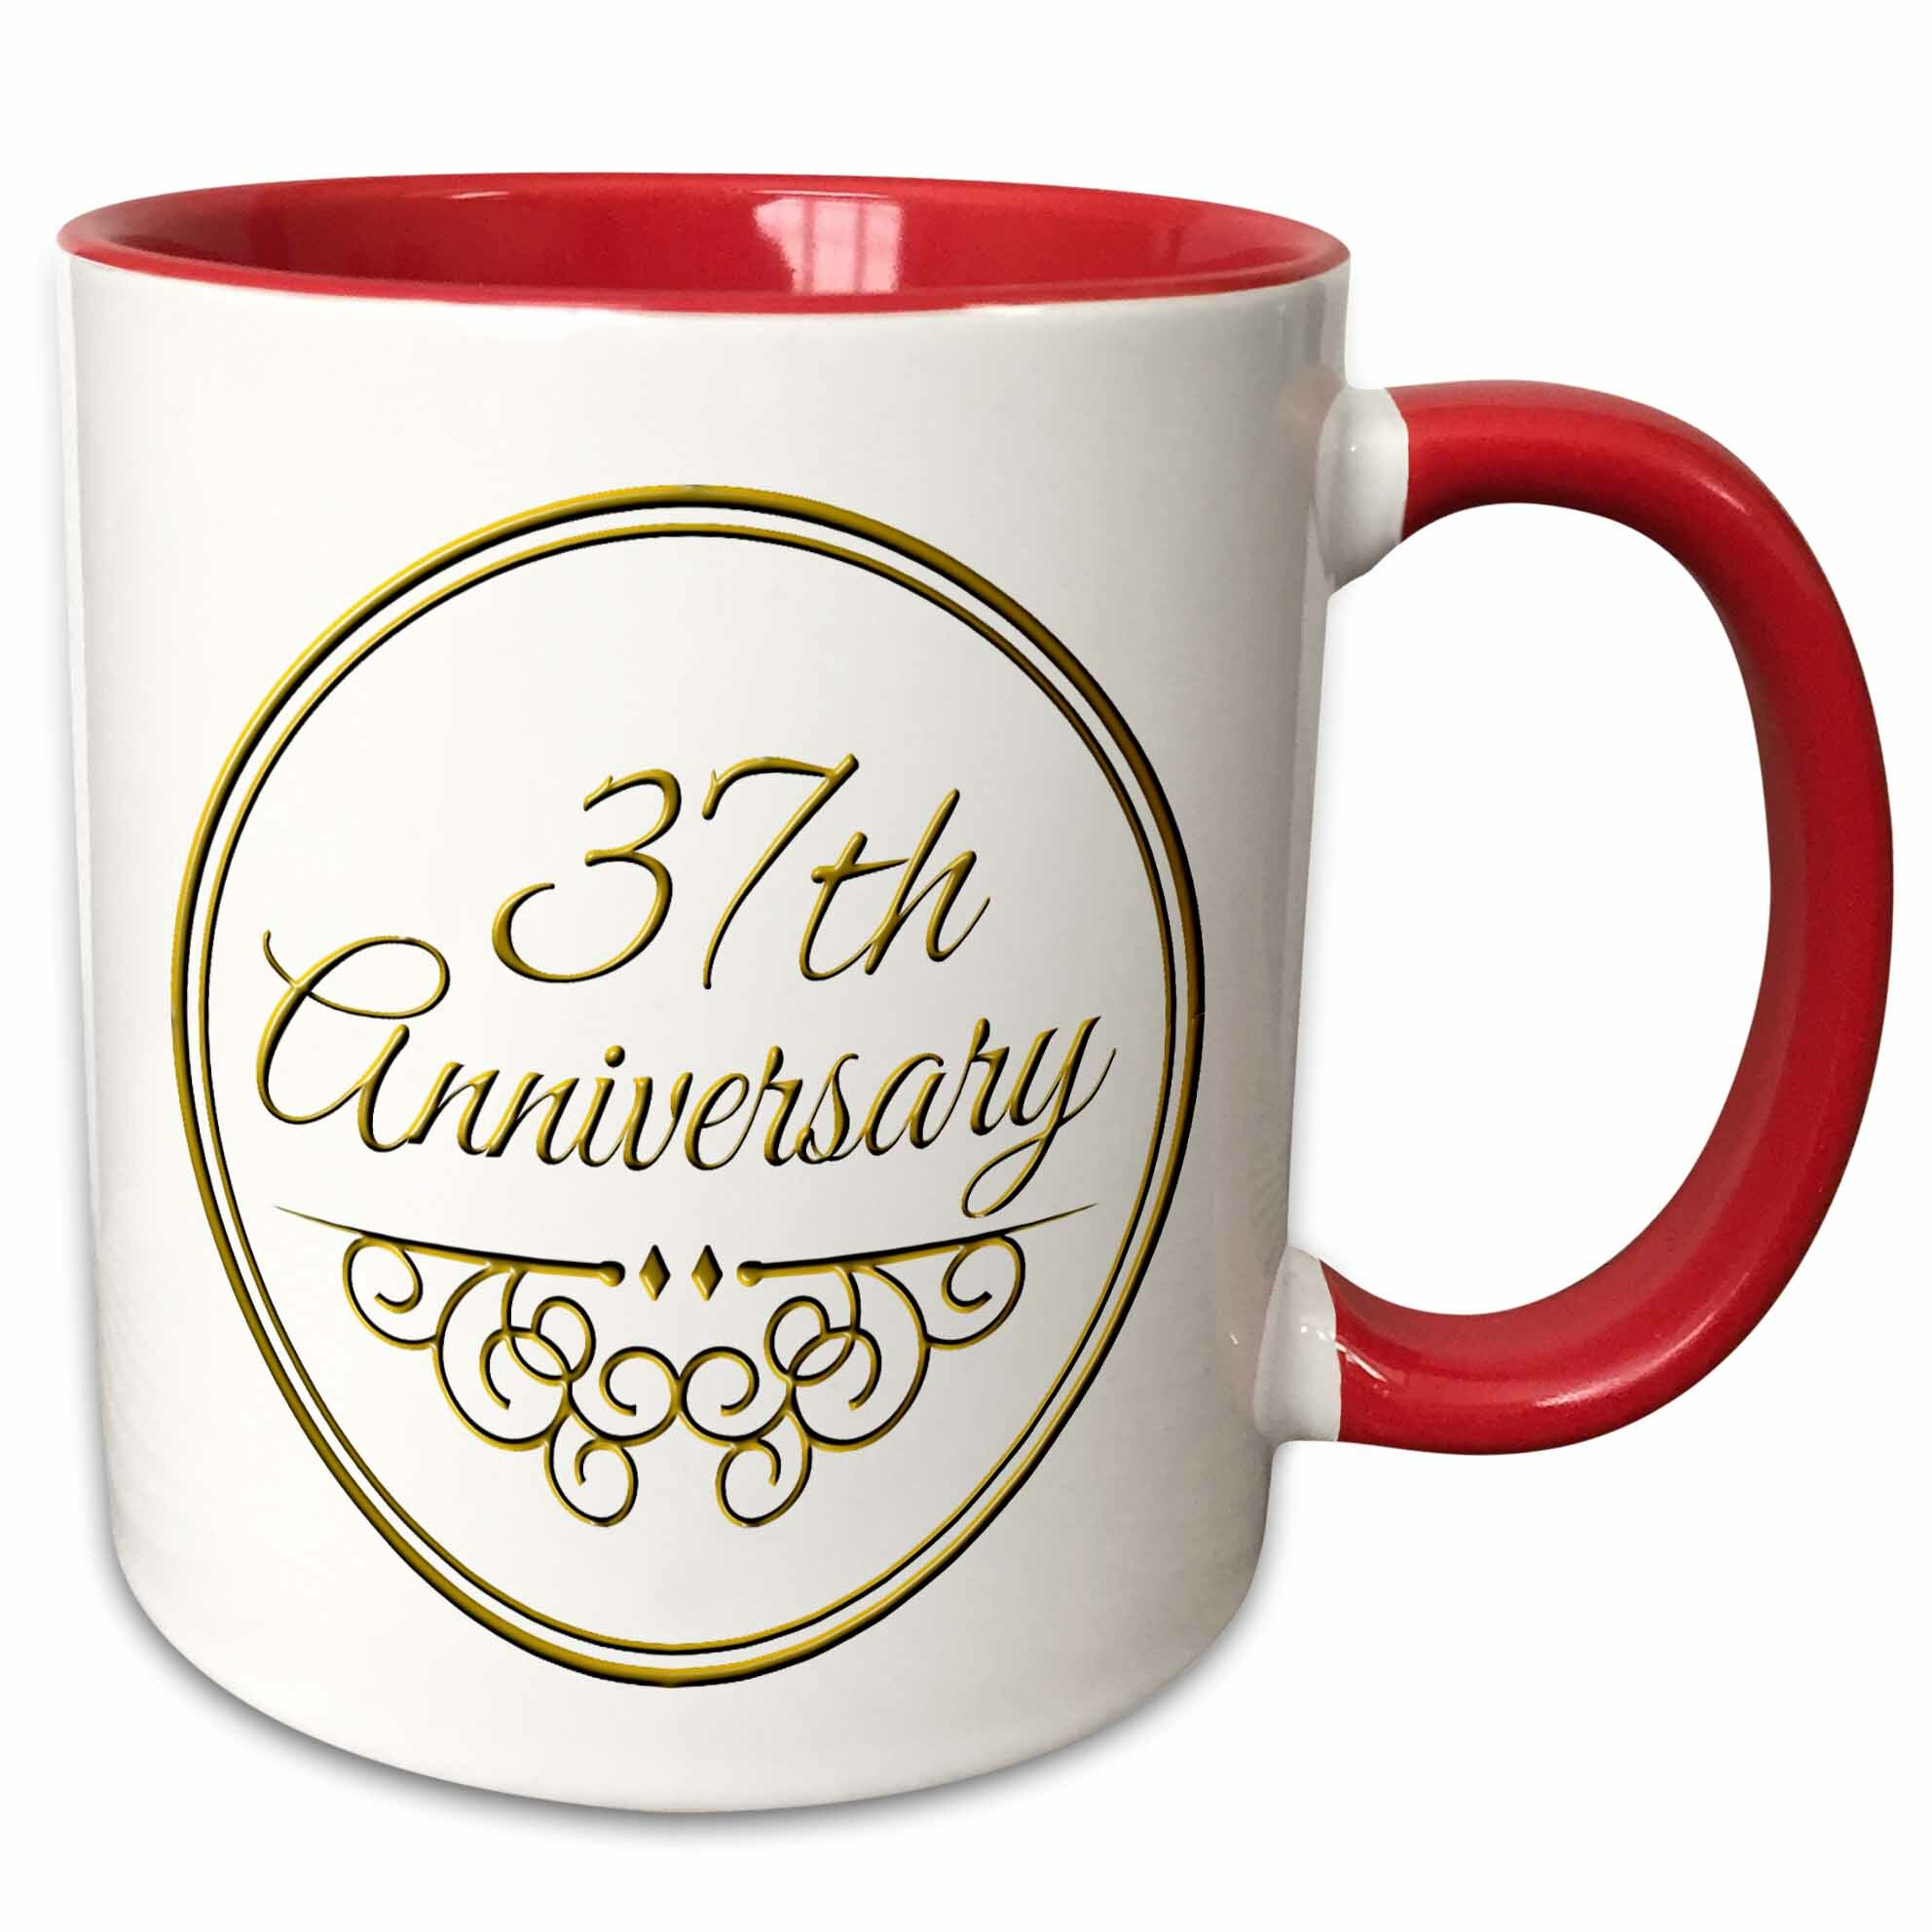 48th Wedding Anniversary Gift Ideas: The Party Aisle 37th Anniversary Gift Text For Celebrating